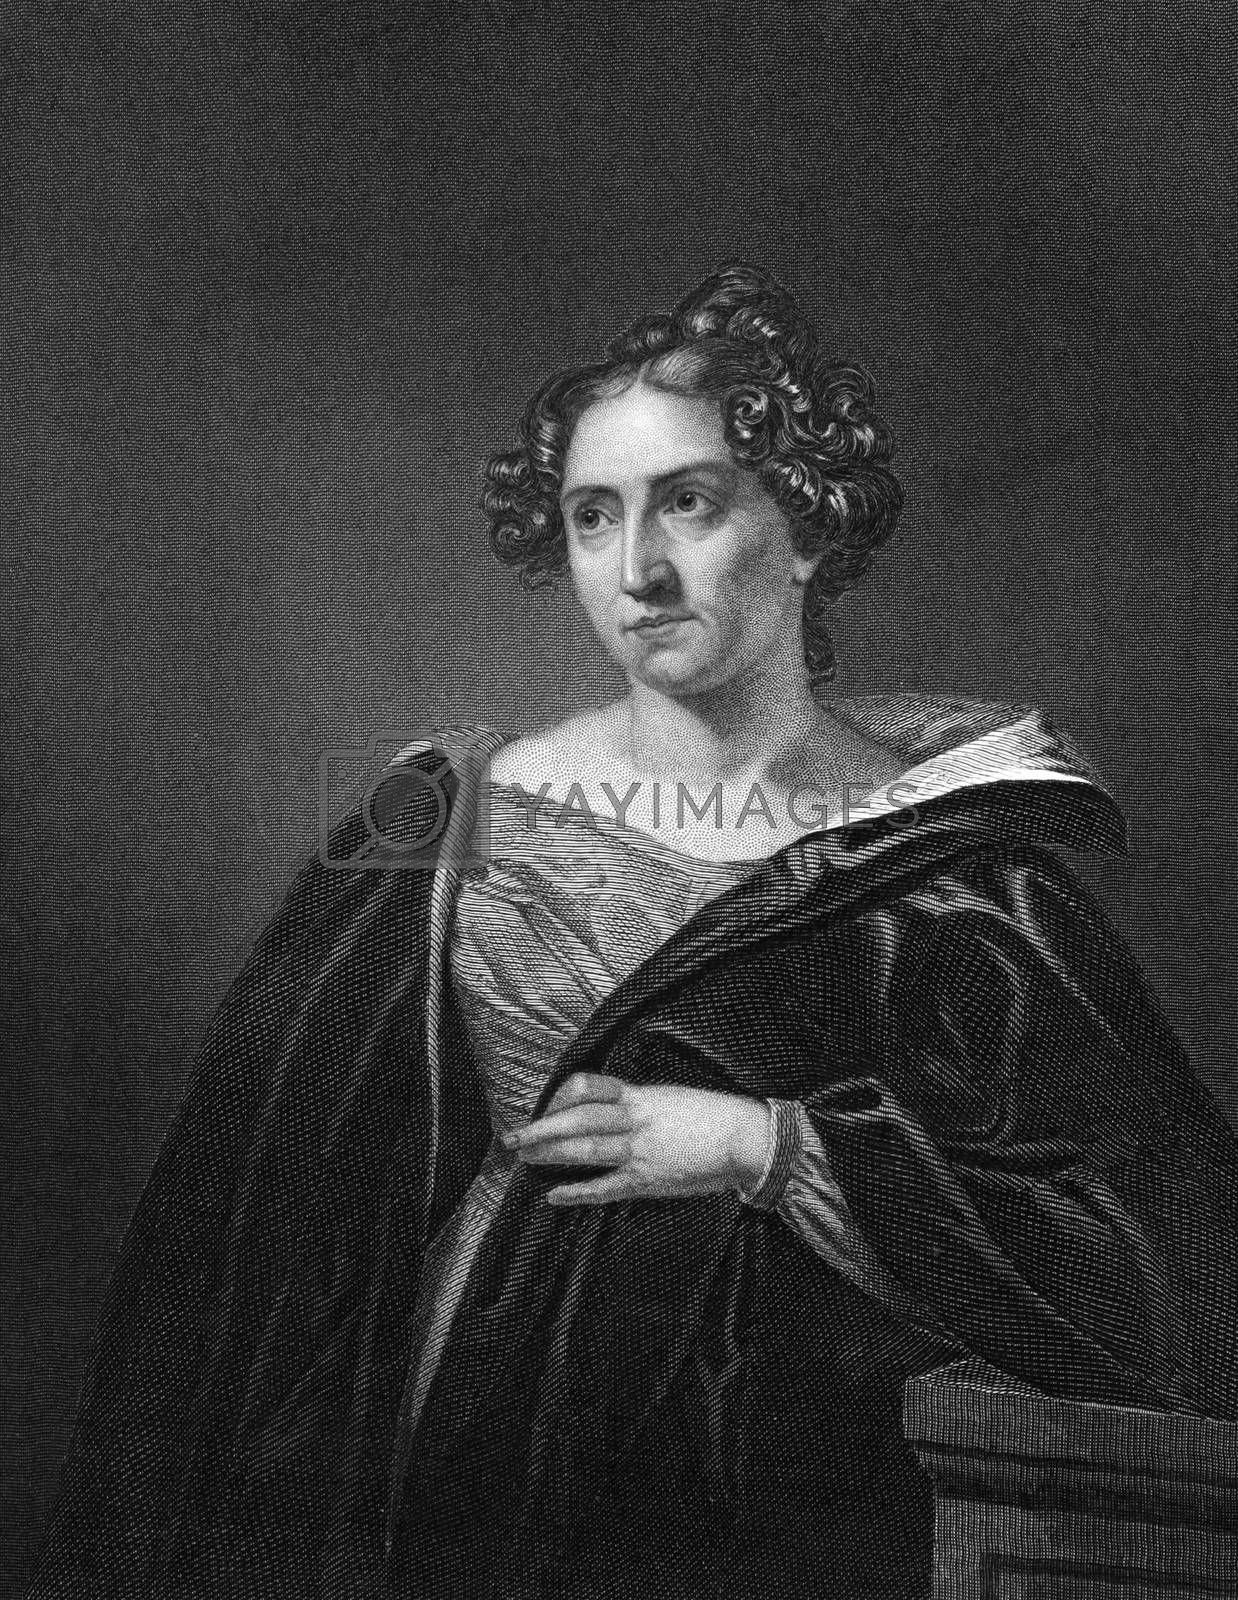 Catharine Sedgwickon (1789-1867) on engraving from 1873. American novelist. Engraved by unknown artist and published in ''Portrait Gallery of Eminent Men and Women with Biographies'',USA,1873.